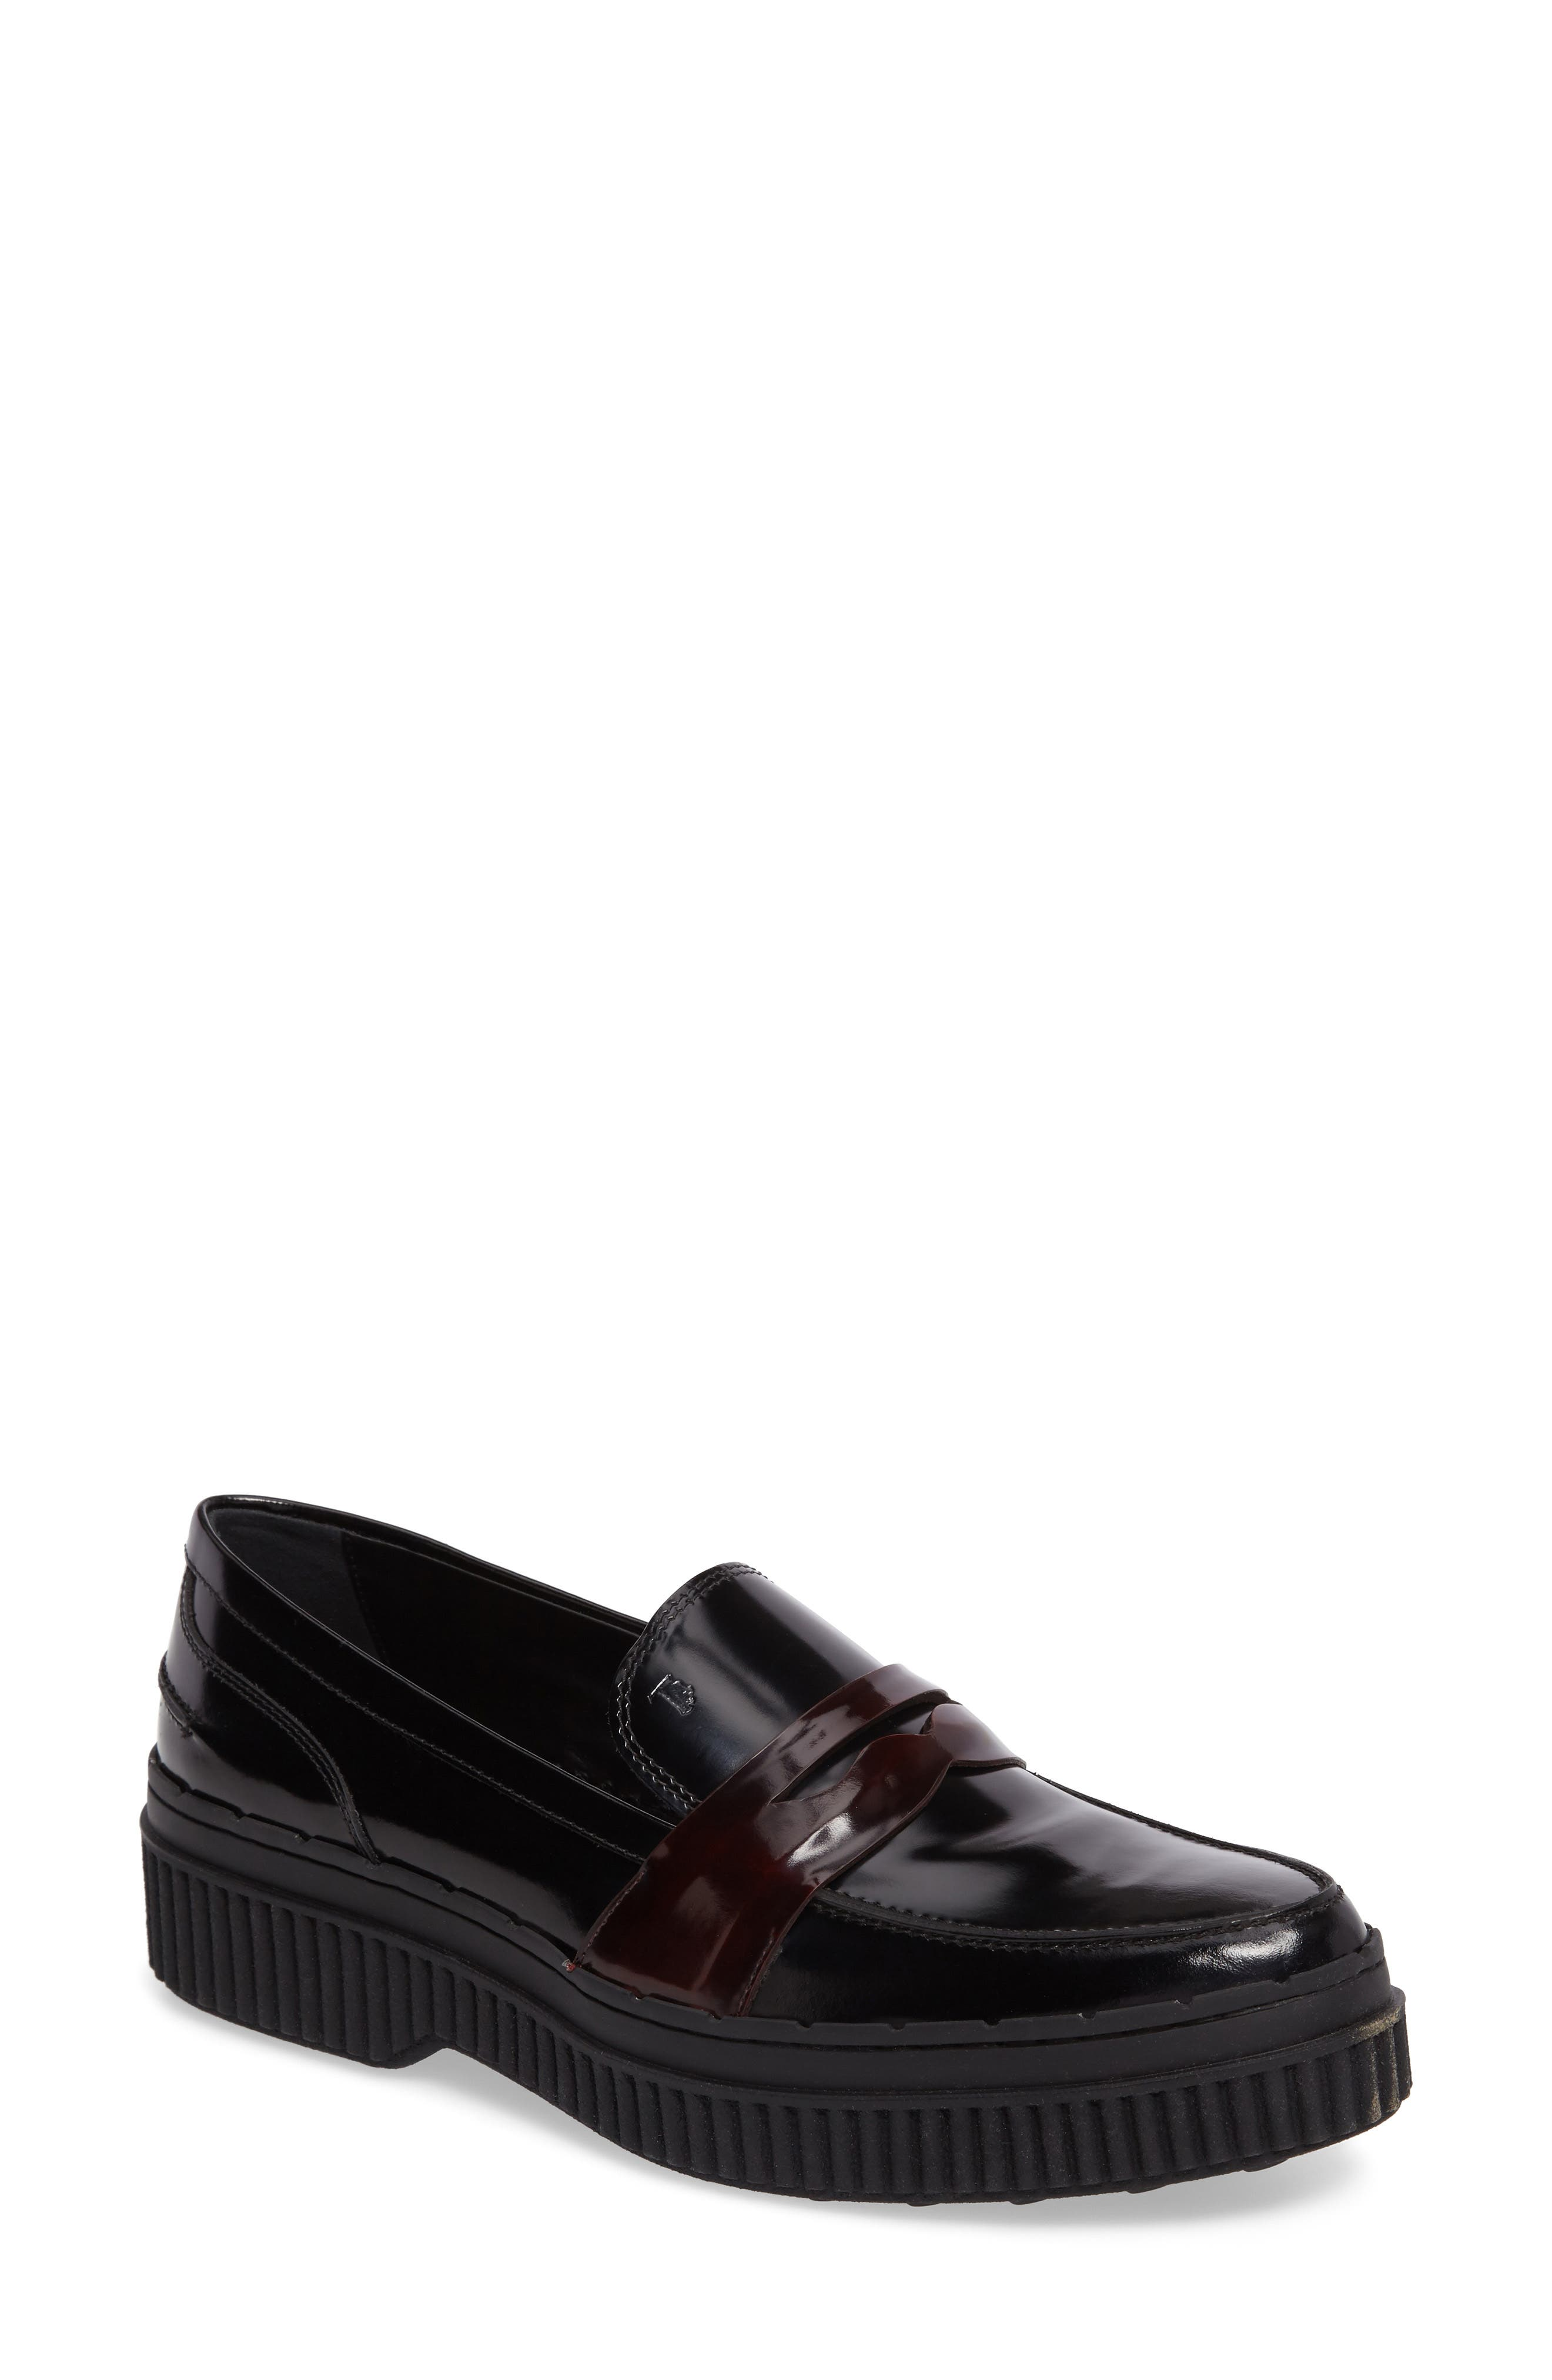 Penny Creeper Loafer,                         Main,                         color, BLACK/ OXBLOOD